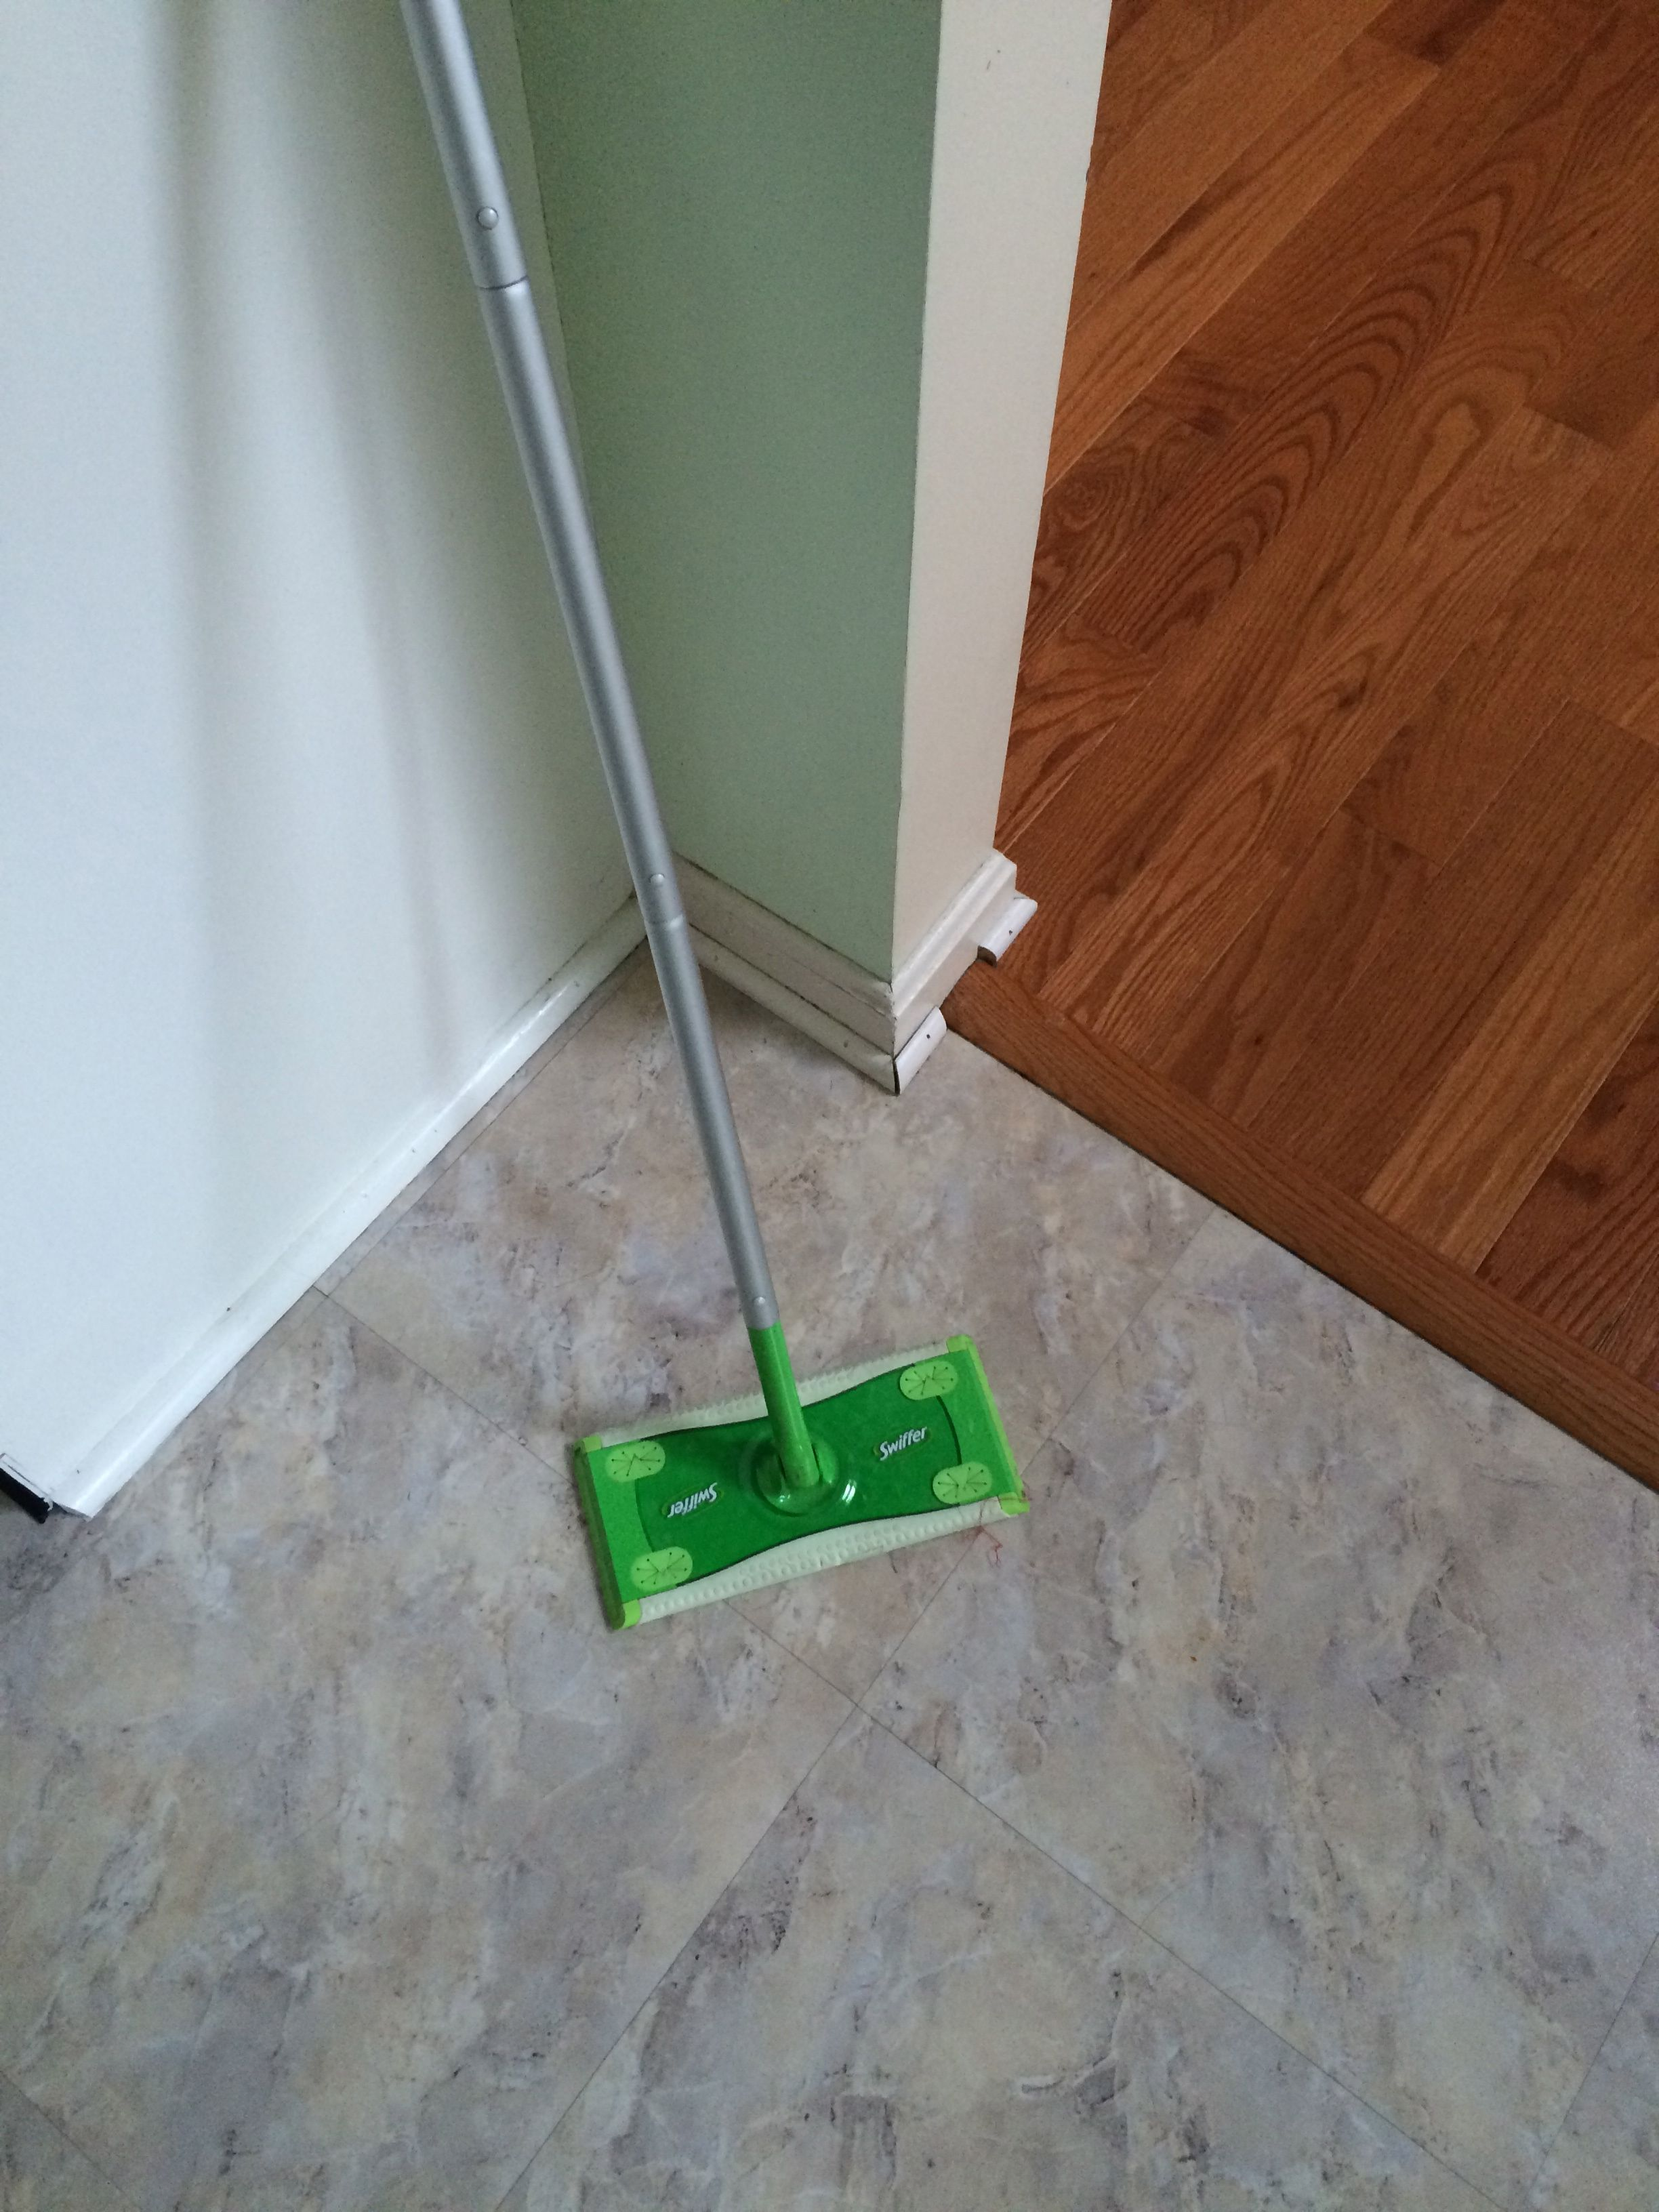 How I Clean My Floors Fast With Images Floor Cleaner Cleaning Hacks Cleaning